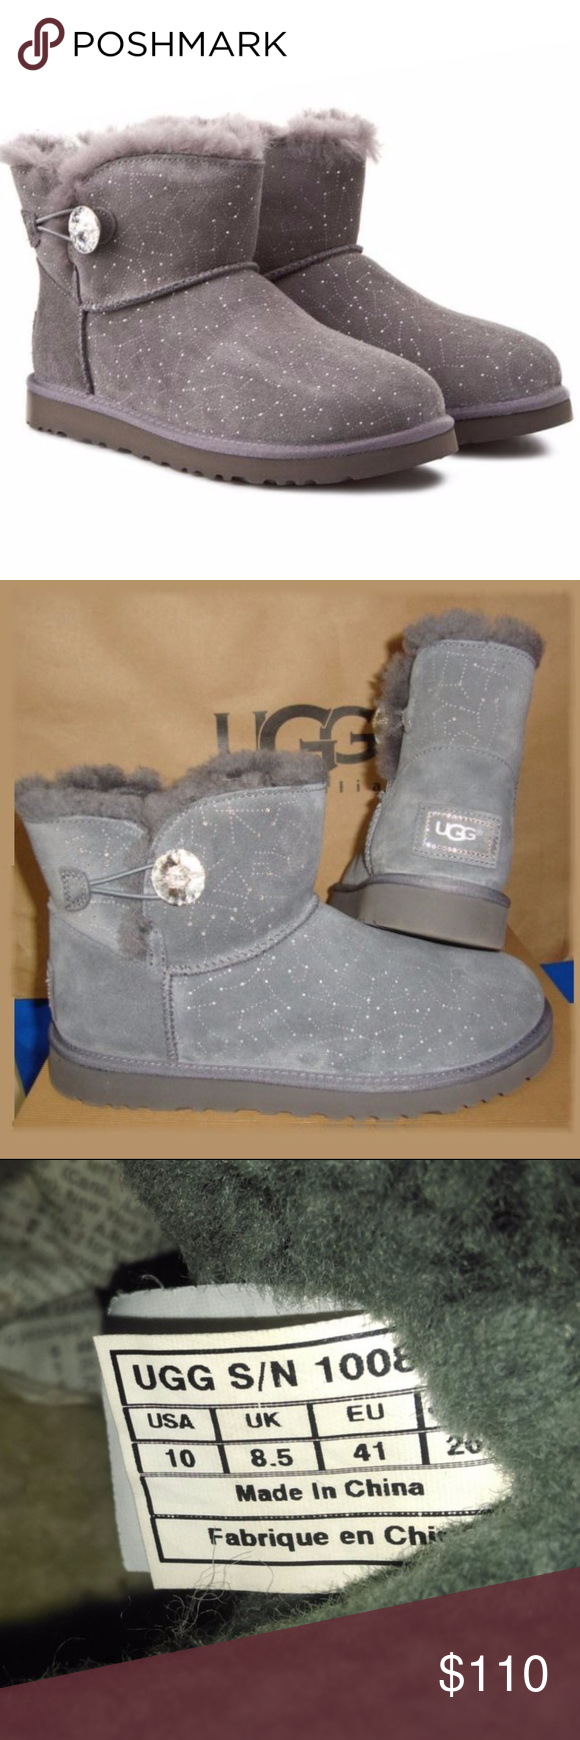 e63956c3bbb UGG Limited Edition Bailey Button Bling Gray - 10 Water-resistant ...